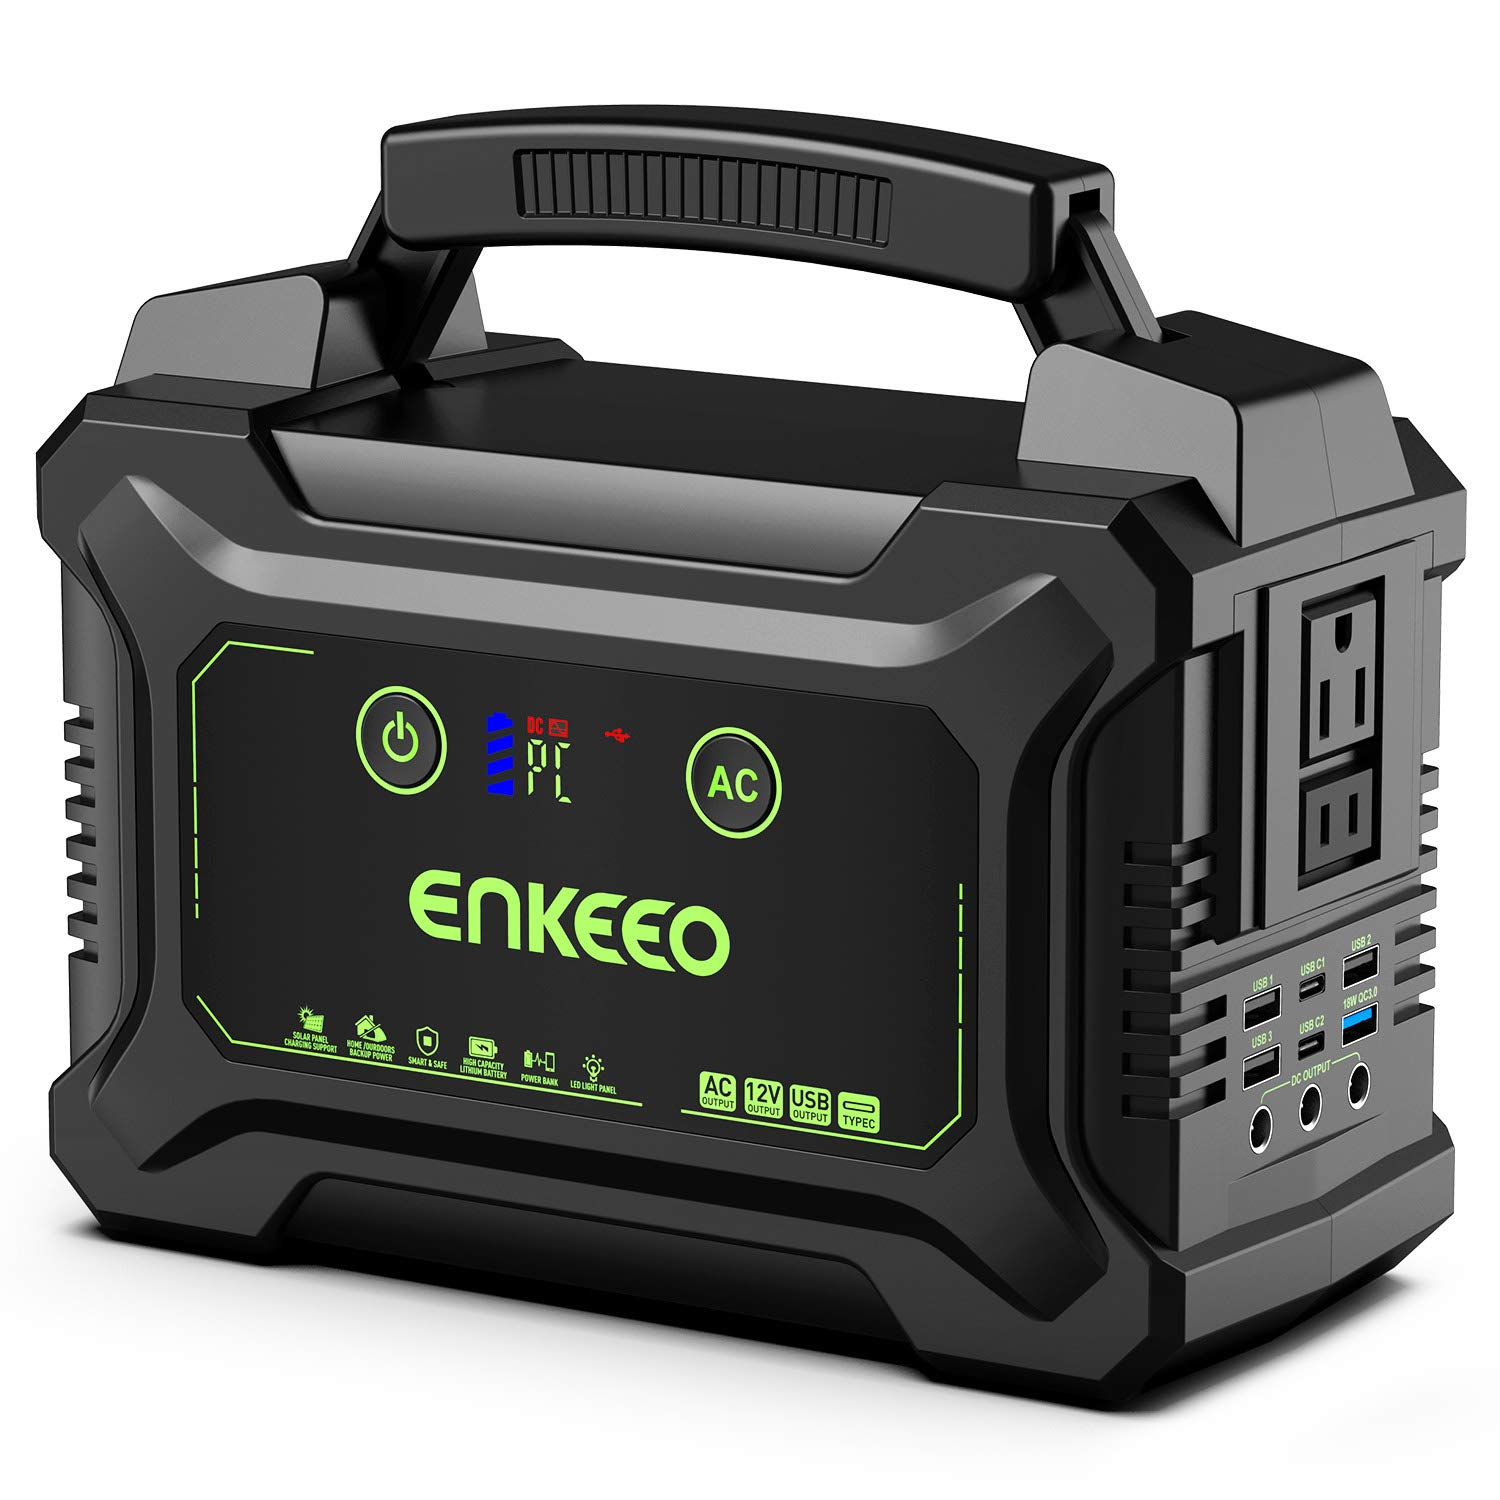 ENKEEO Portable Power Station 222W, Power Charger Camping CPAP Generator Backup Supply 110V/200W (Solar Panel Optional) AC Lithium Battery Outlet, 4USB, 2Type-C Port, LED Light for Travel Emergency